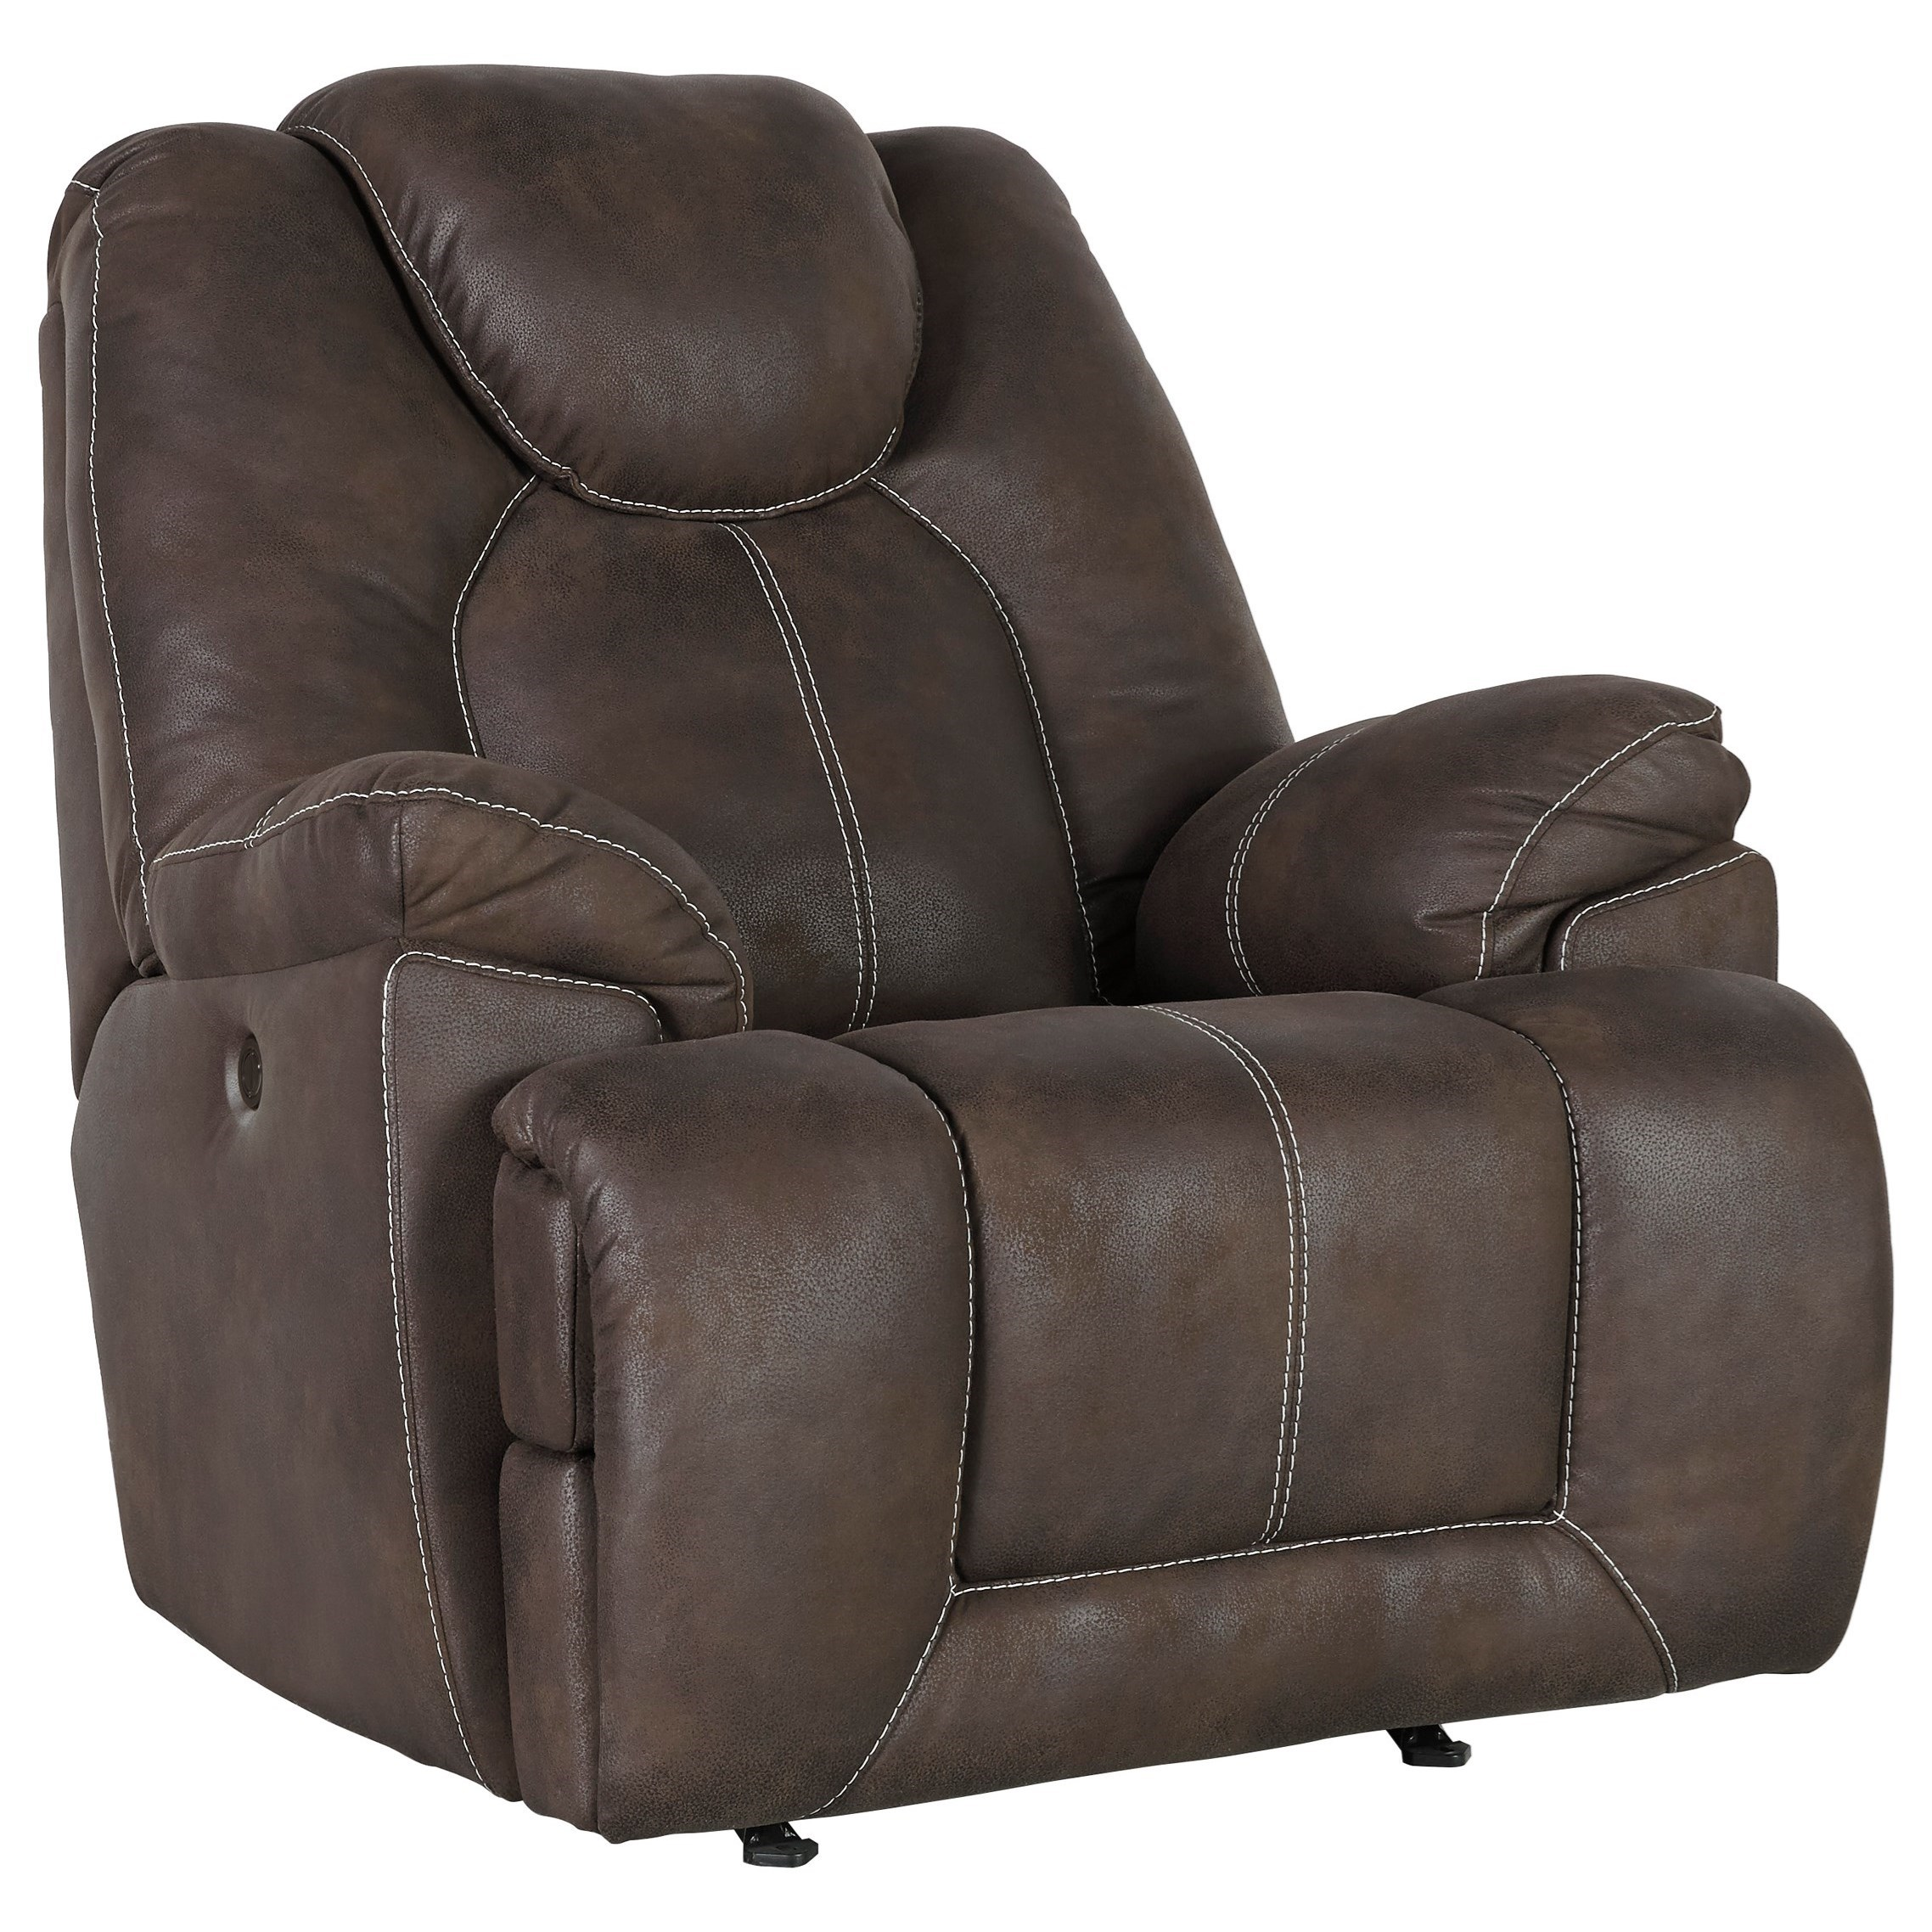 Warrior Fortress Power Rocker Recliner by Signature Design by Ashley at Beck's Furniture